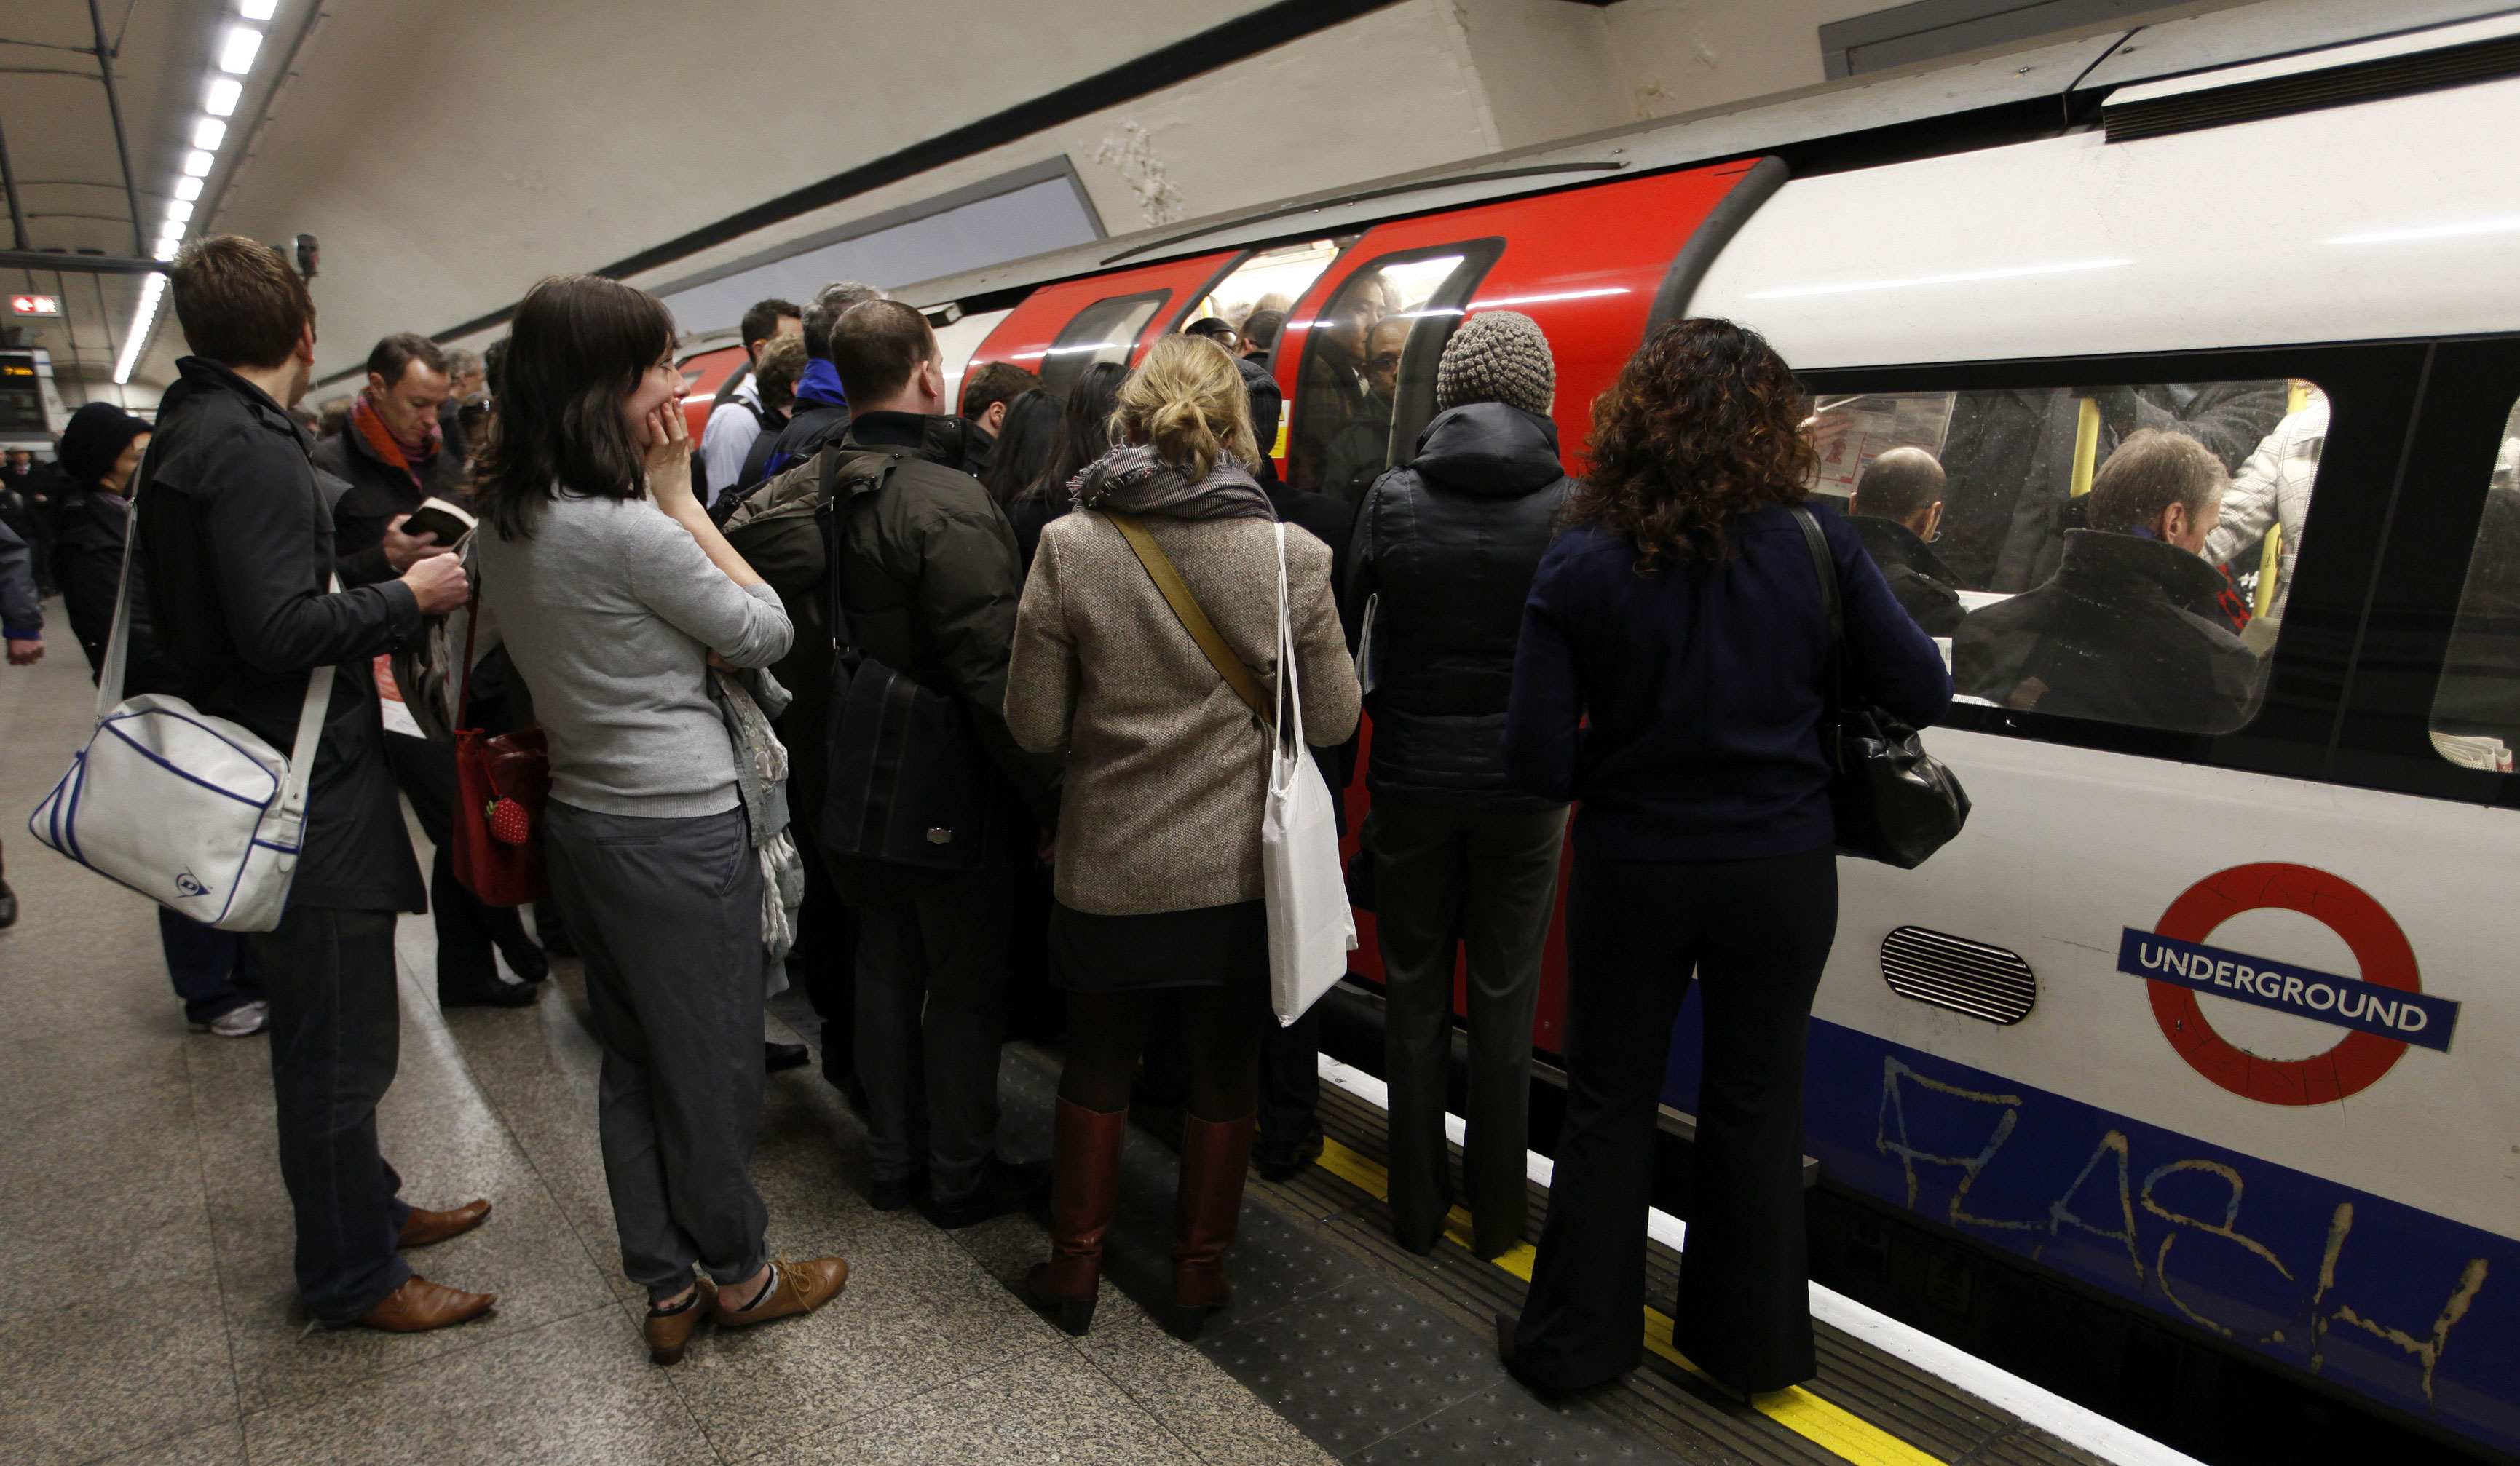 Transport for London warns 'significant disruption' is likely on the Tube during a Boxing Day strike by train drivers' union Aslef over holiday working conditions and pay.